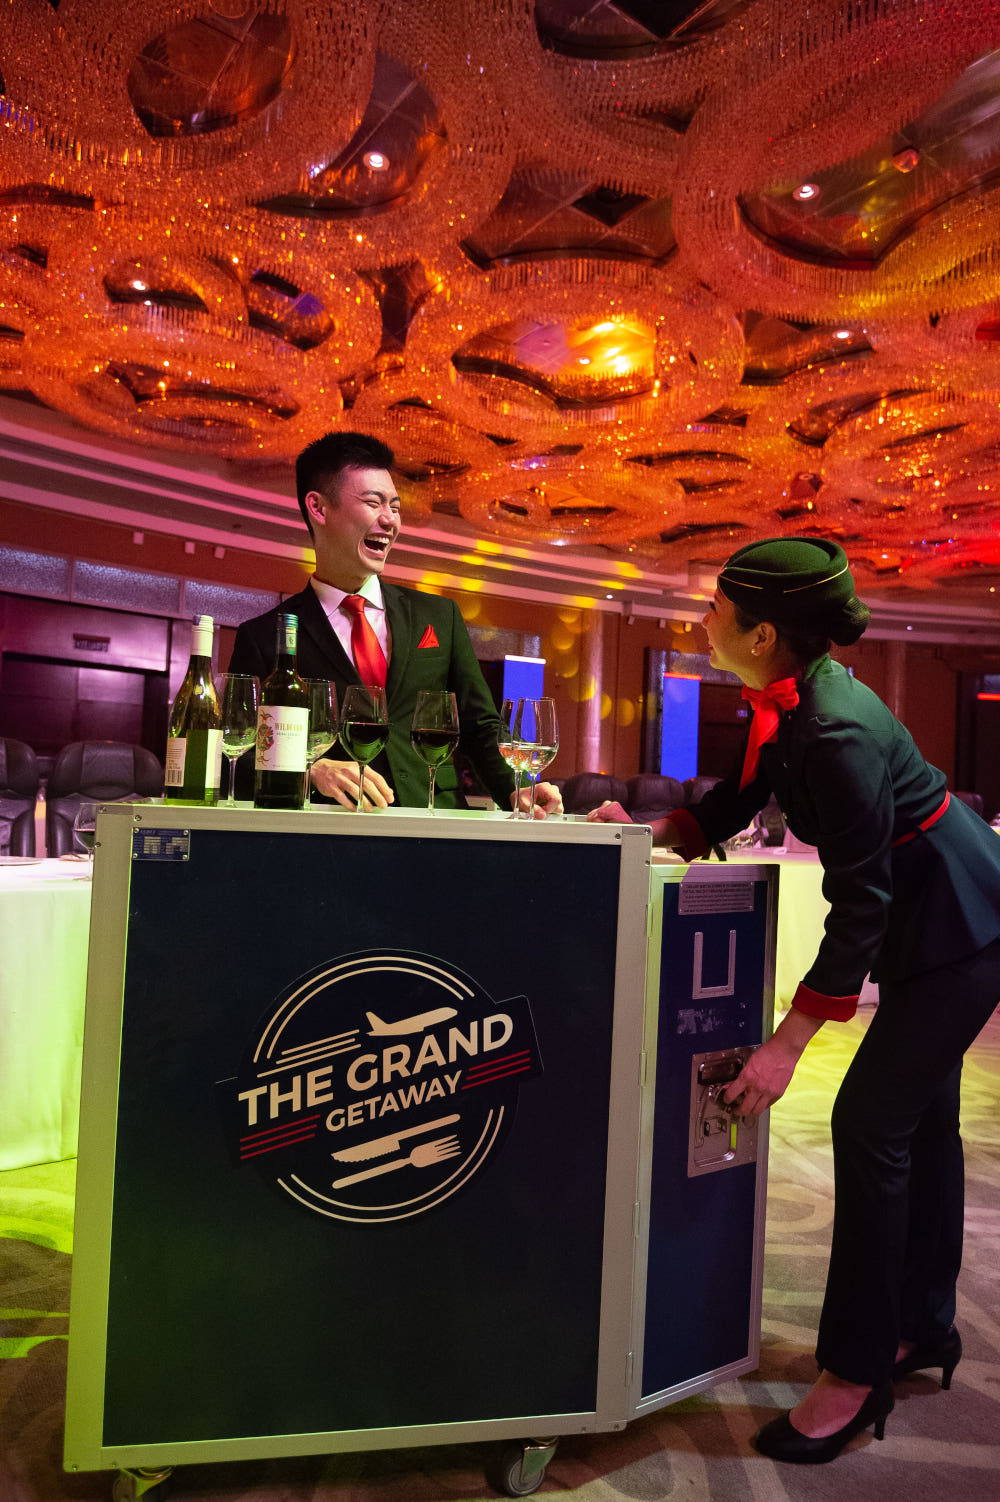 The Grand Getaway flight crews to serve guests. — Picture courtesy of MD Events Asia